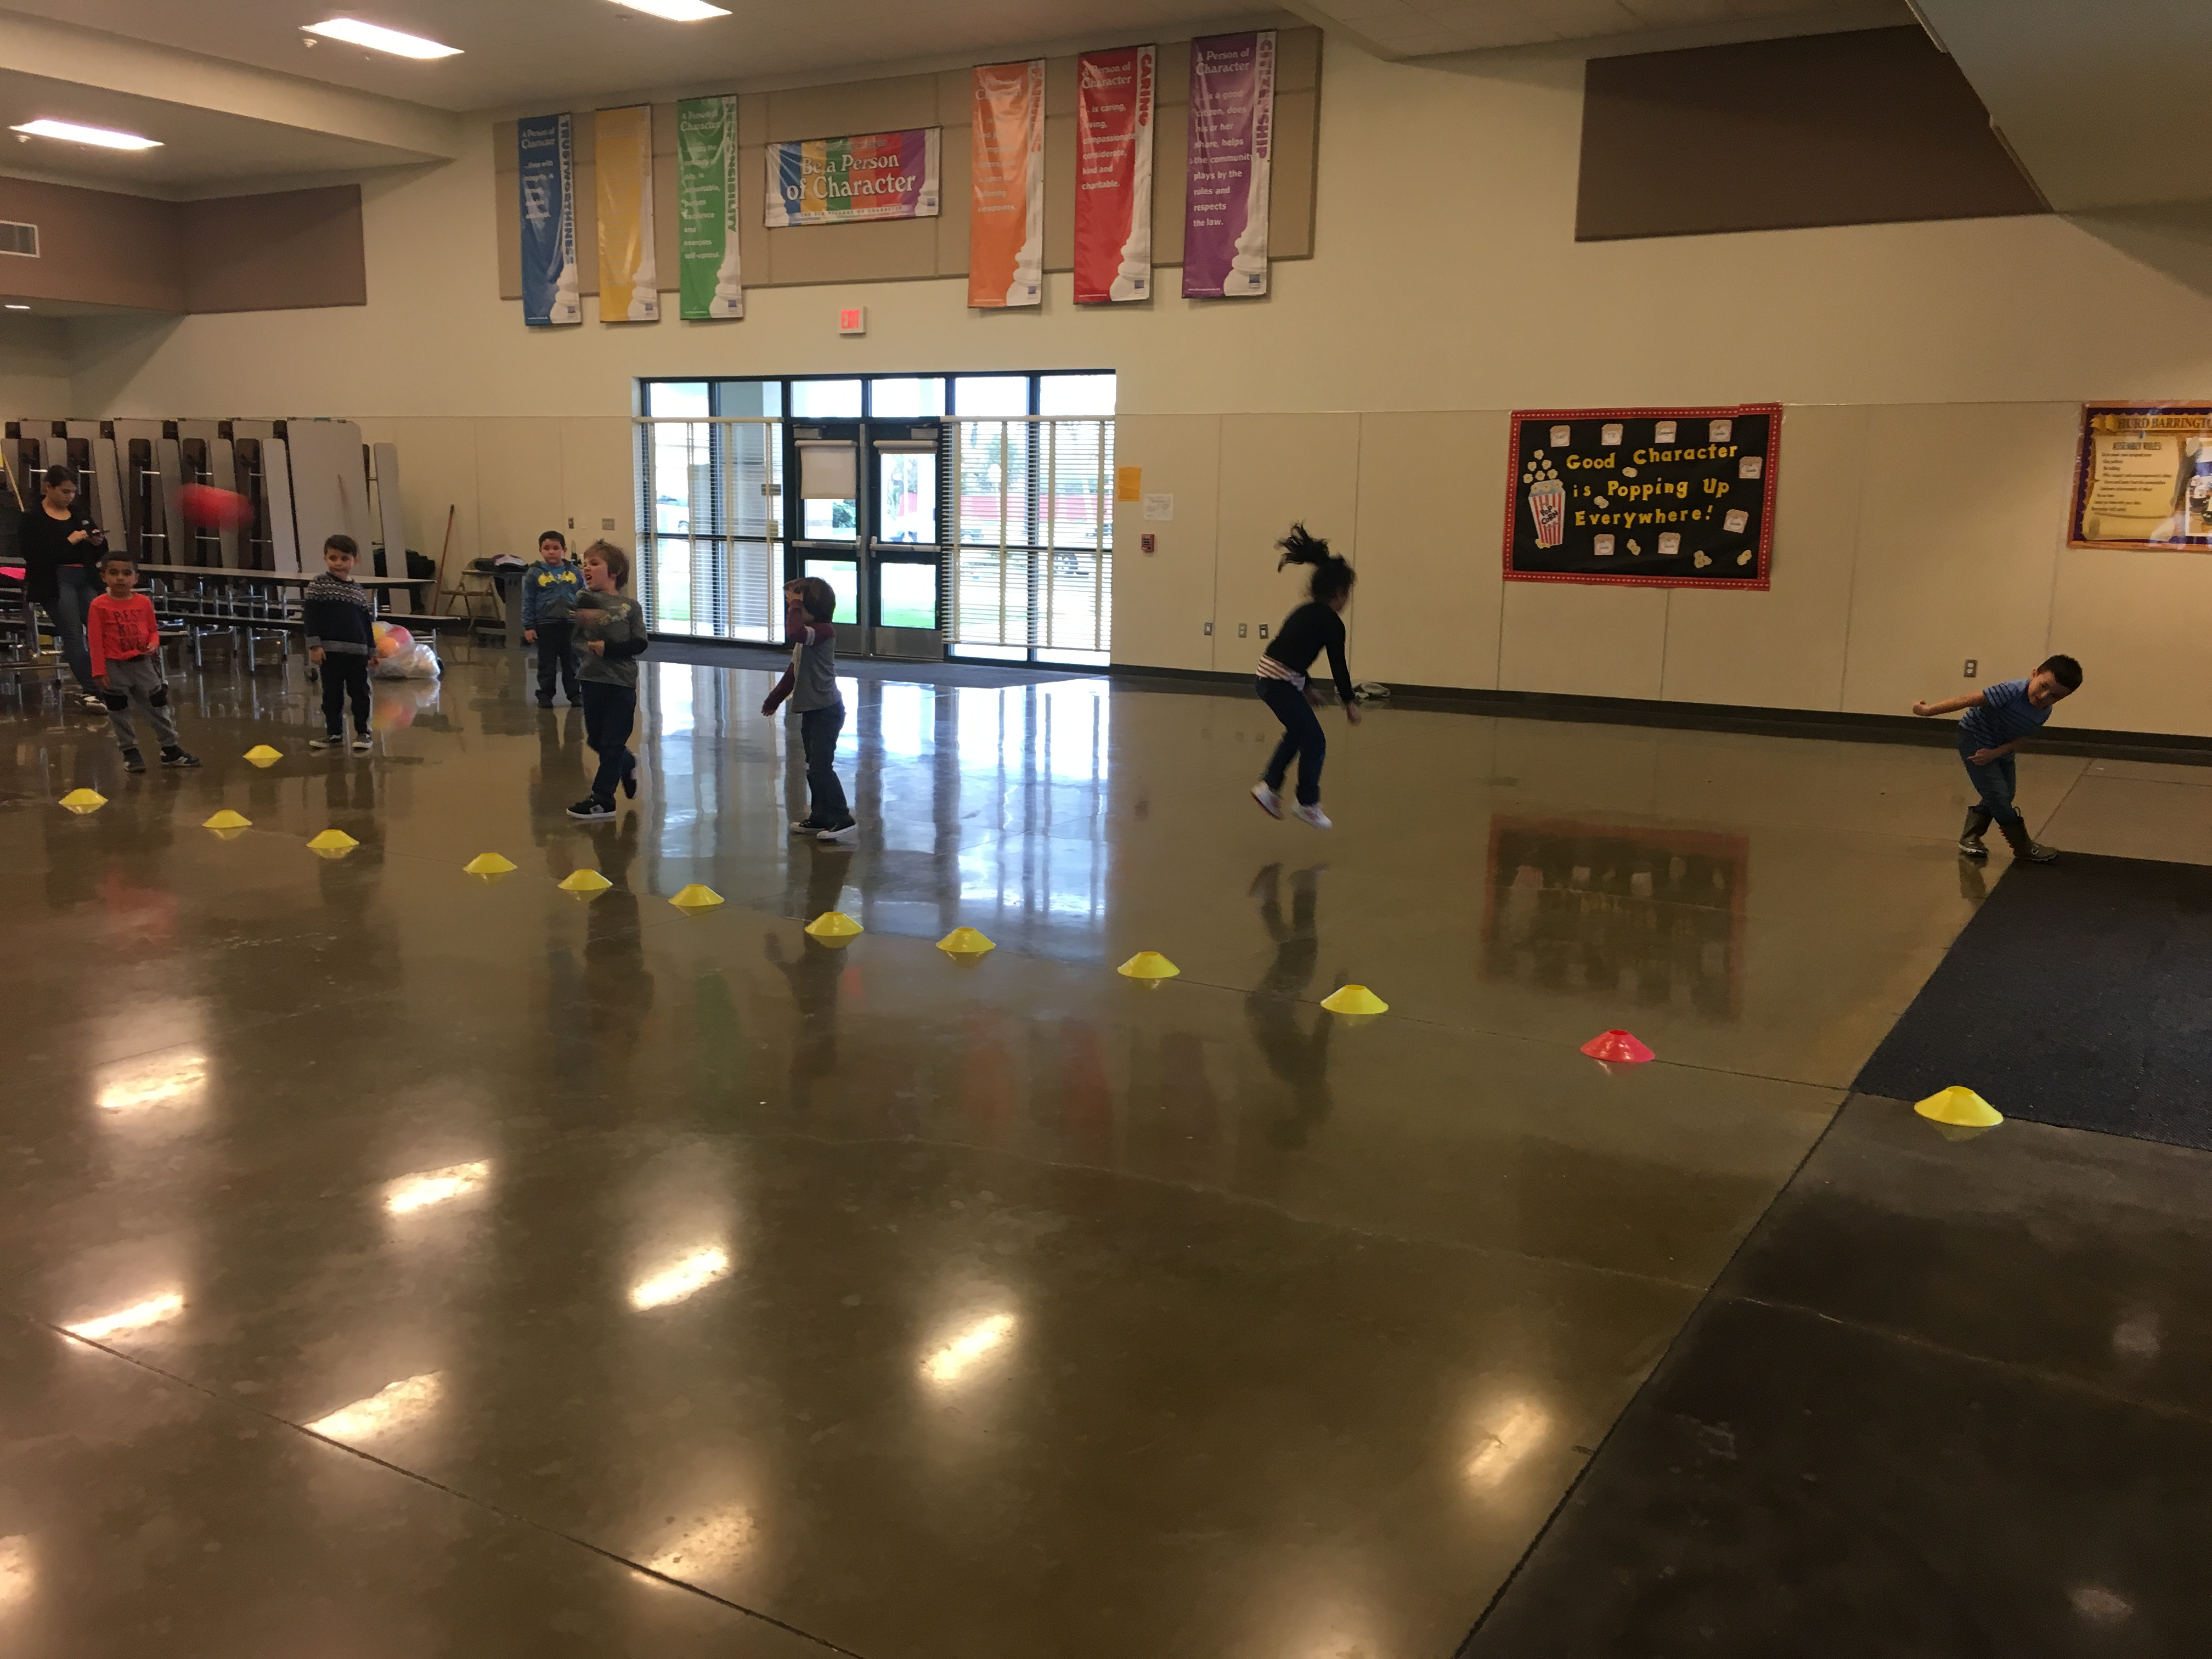 A group of students playing dodgeball